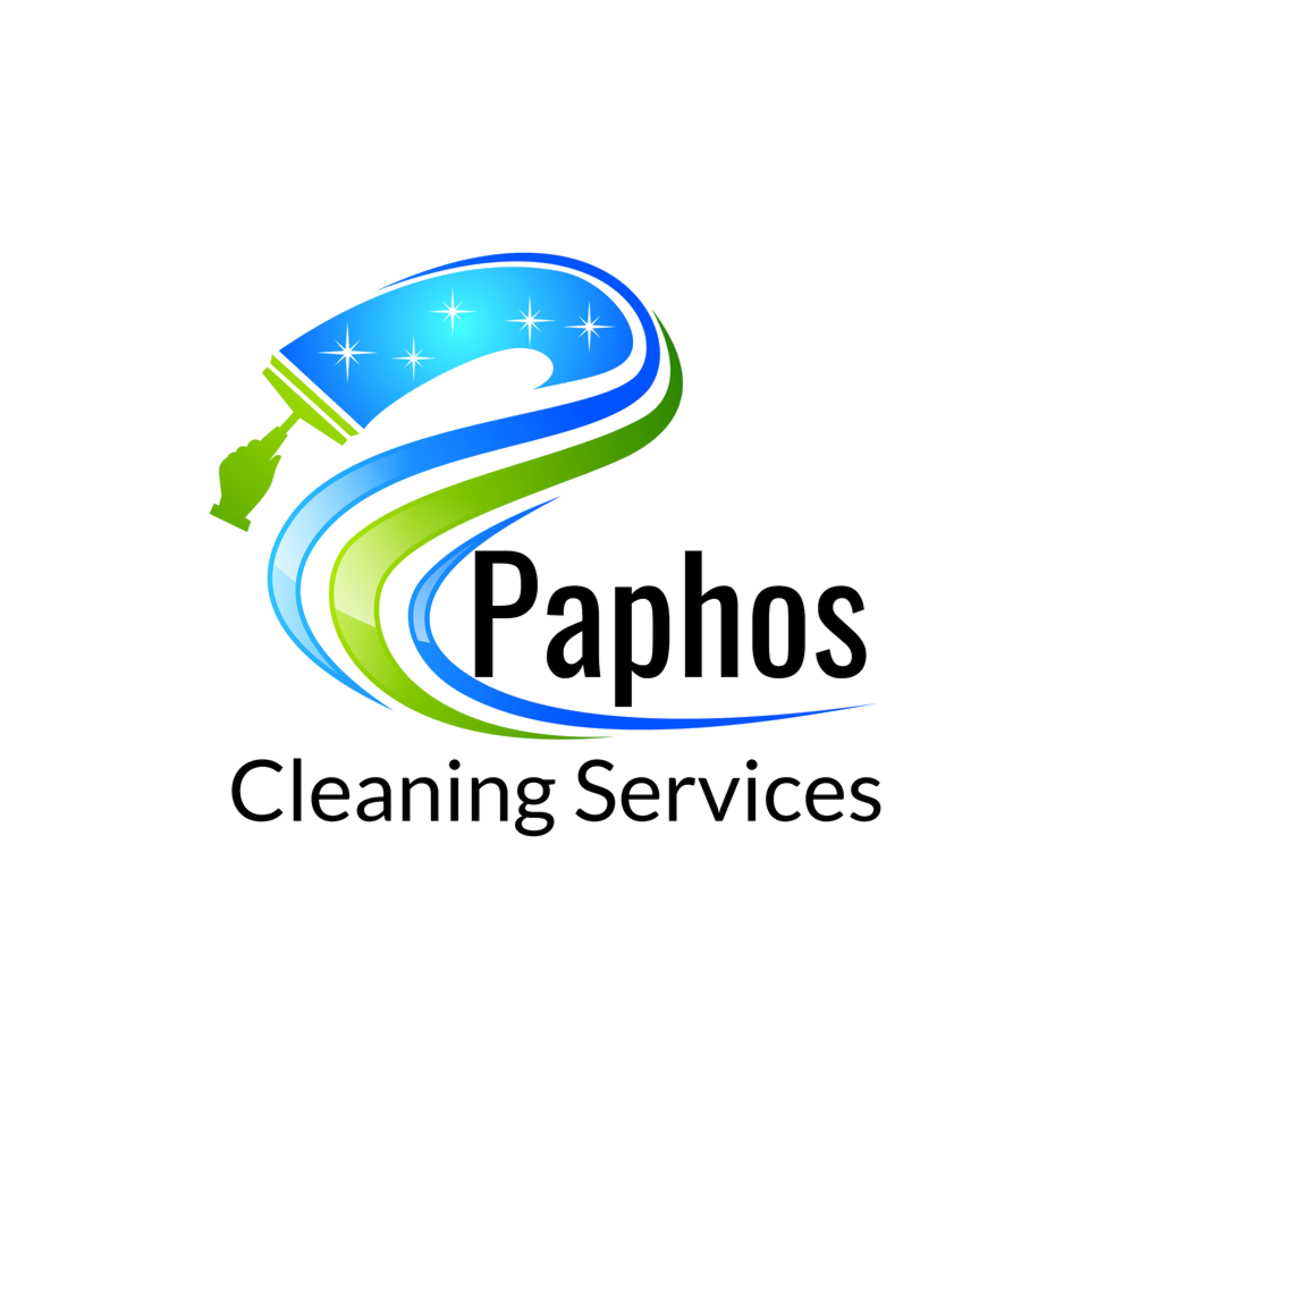 Paphos Cleaning Service Logo